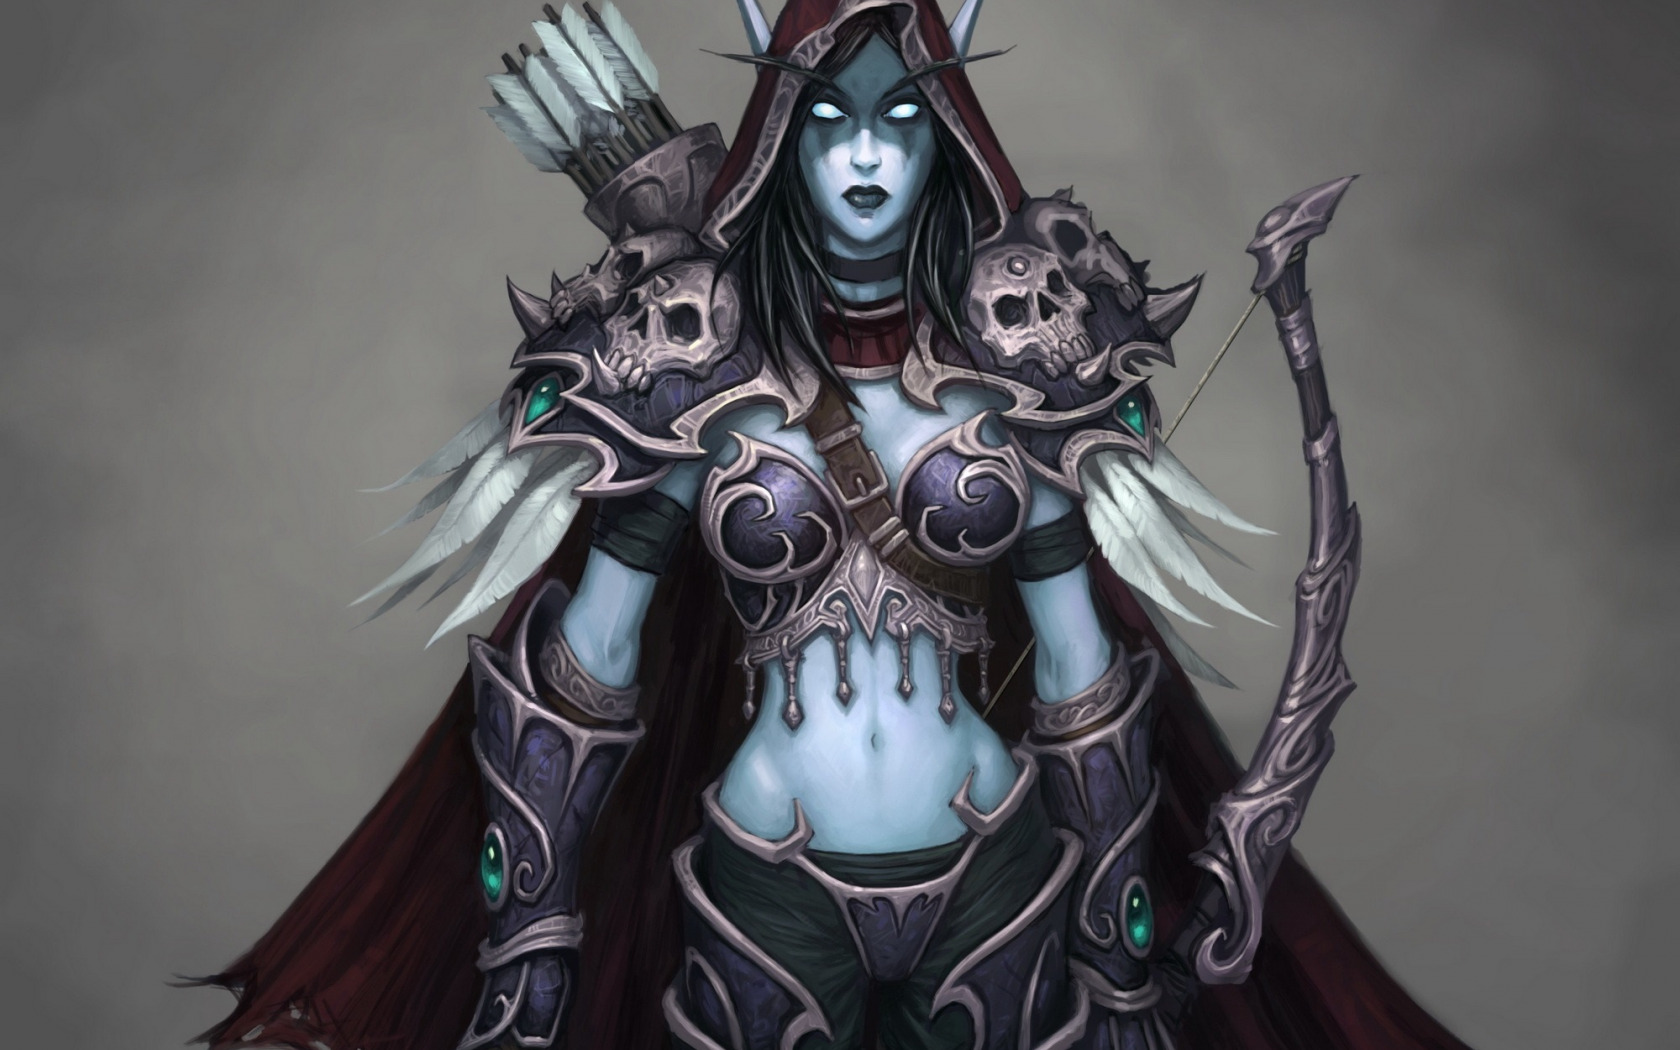 World of Warcraft undead armor nude gallery